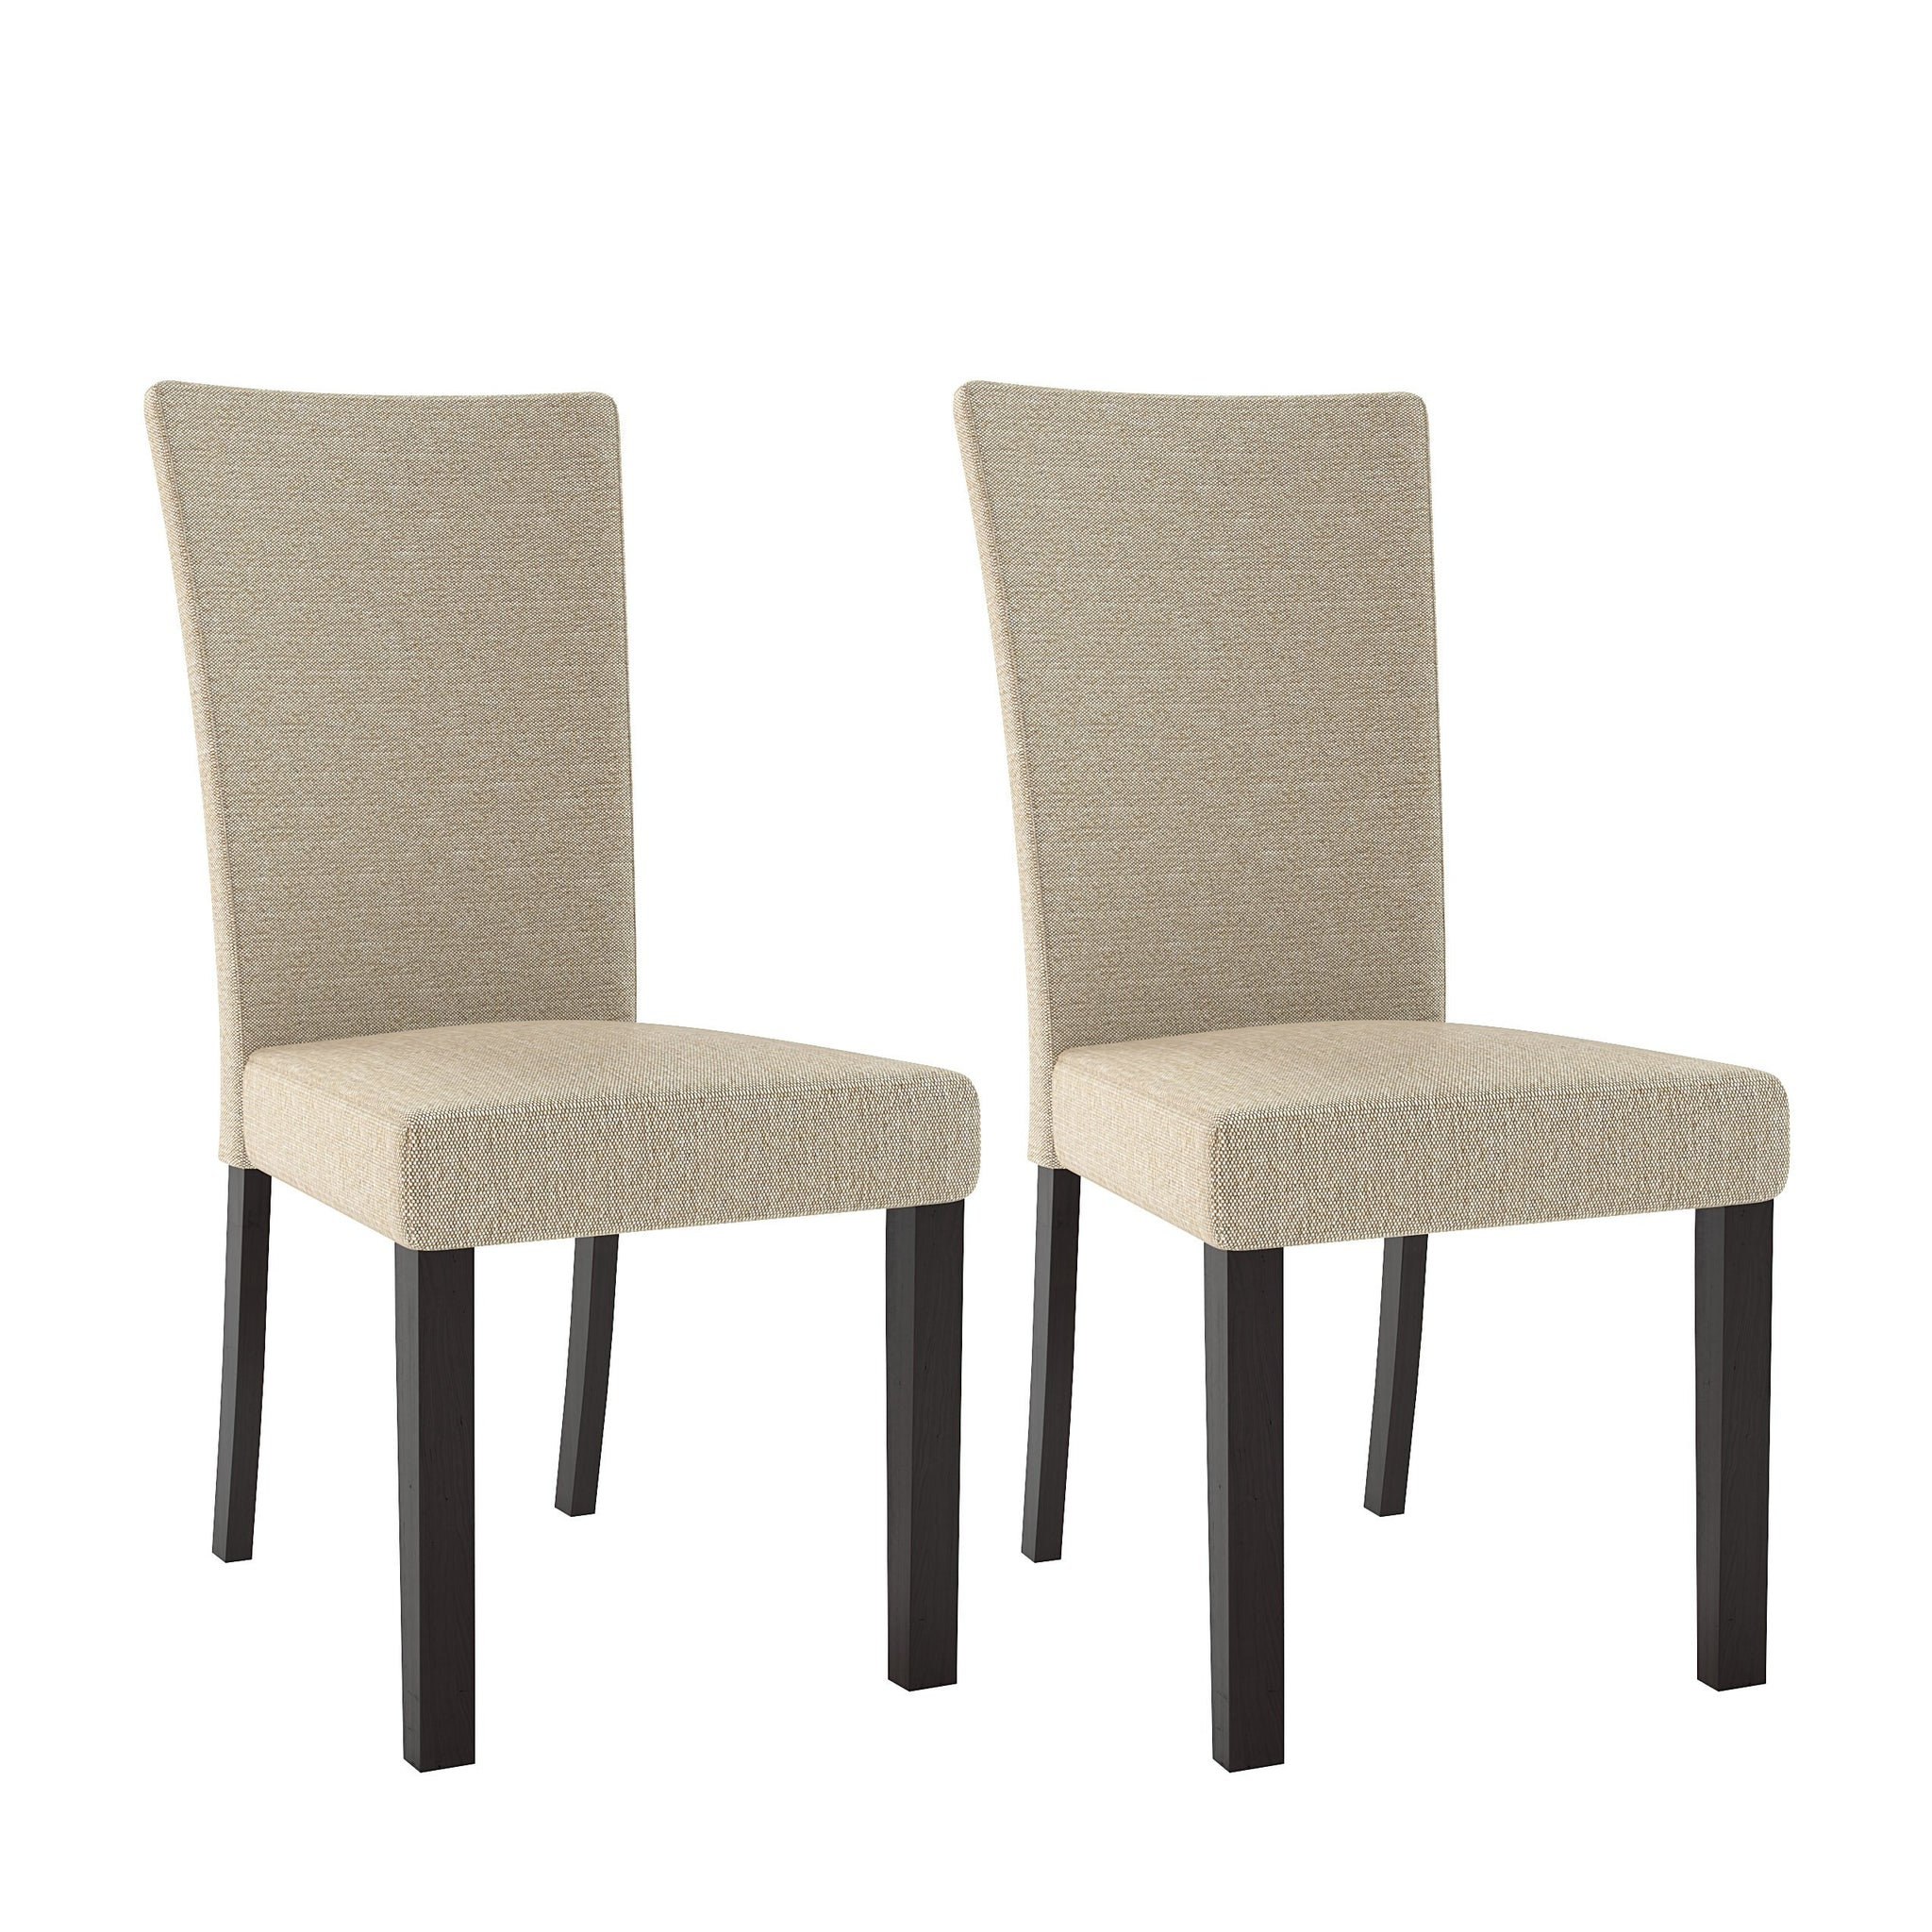 Fabric Bistro Dining Chairs Set Of 2 Clearance